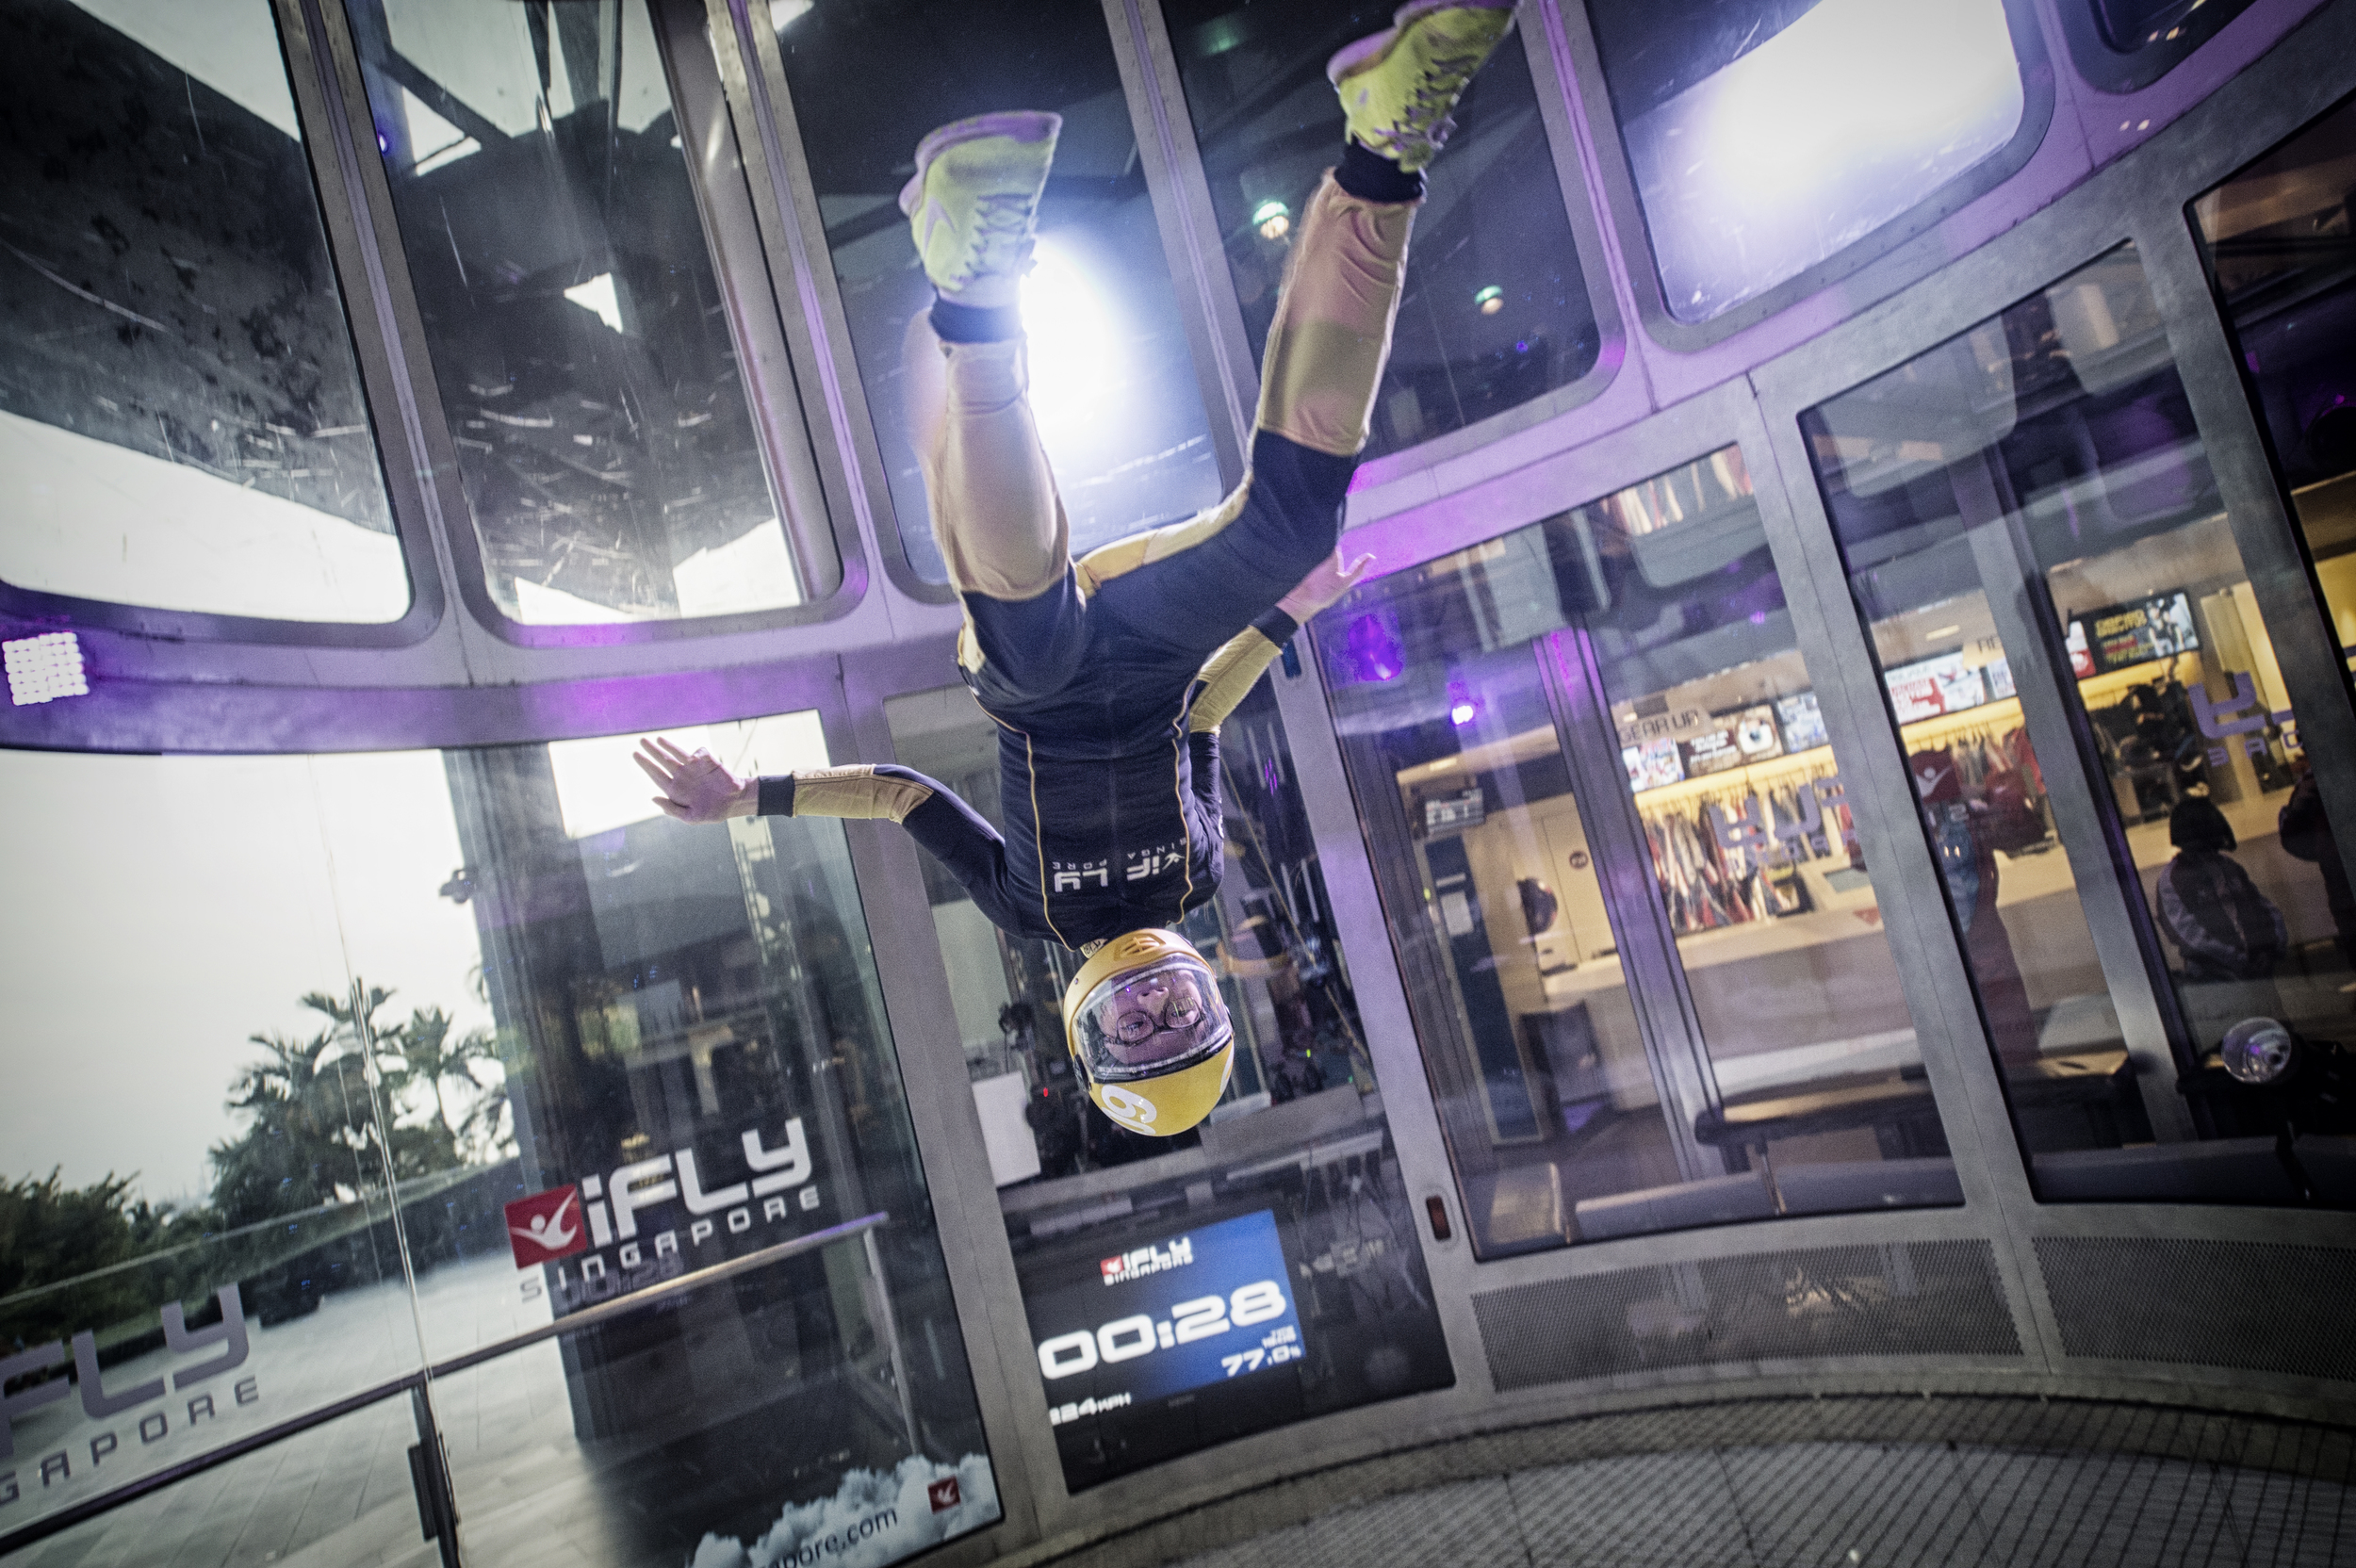 Indoor skydiving is a relatively new sport involving a vertical wind tunnel but Kyra Poh, at 13, already holds the world recordfor the most backwards somersaults in a wind tunnel in a minute among others.